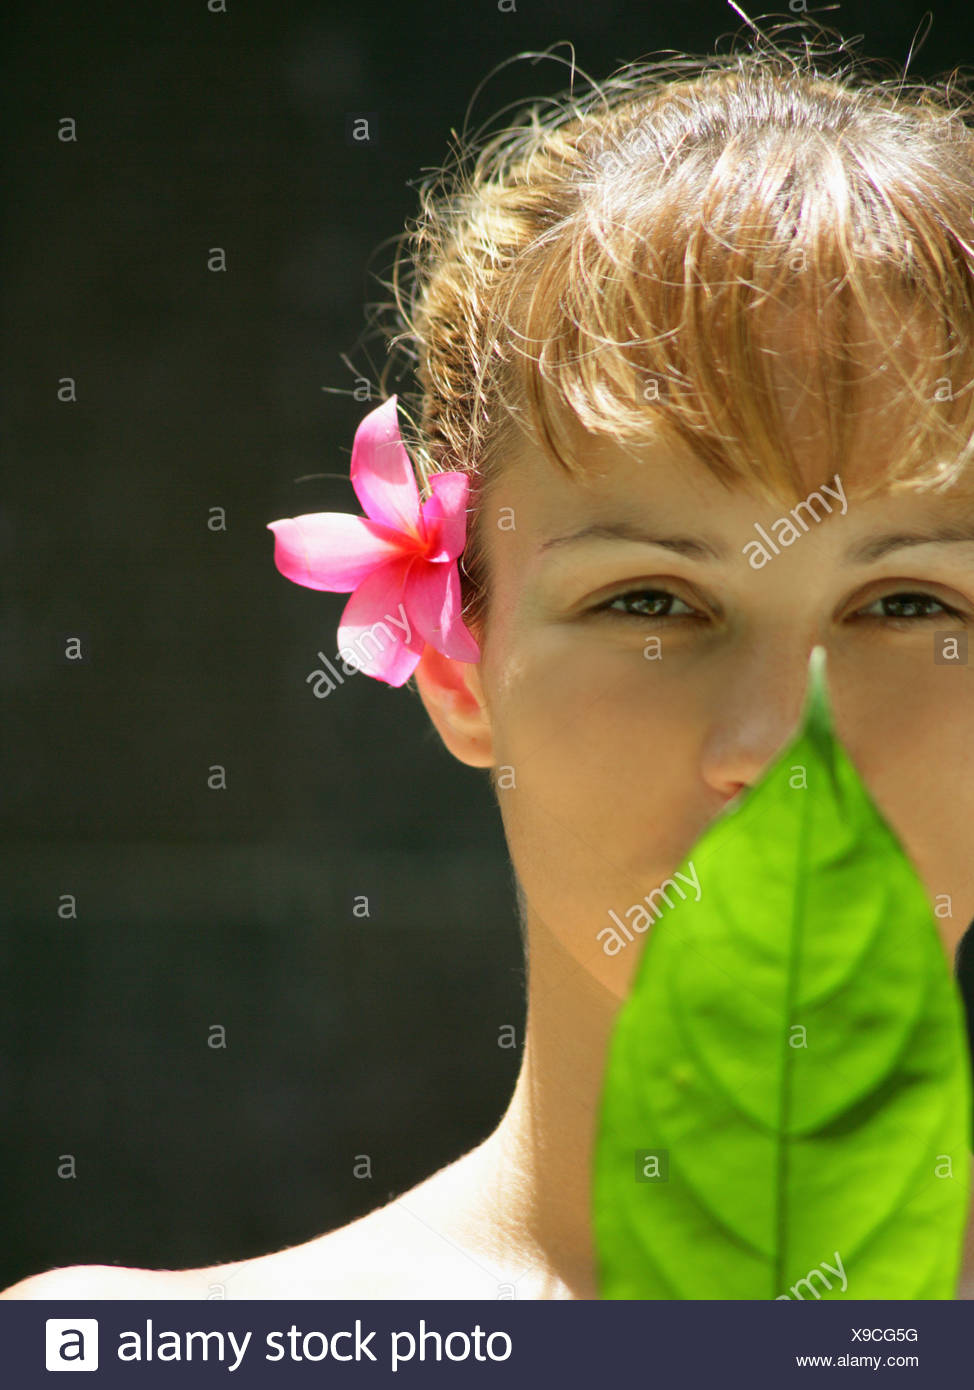 Close-up of a young woman holding a leaf in front of her face - Stock Image